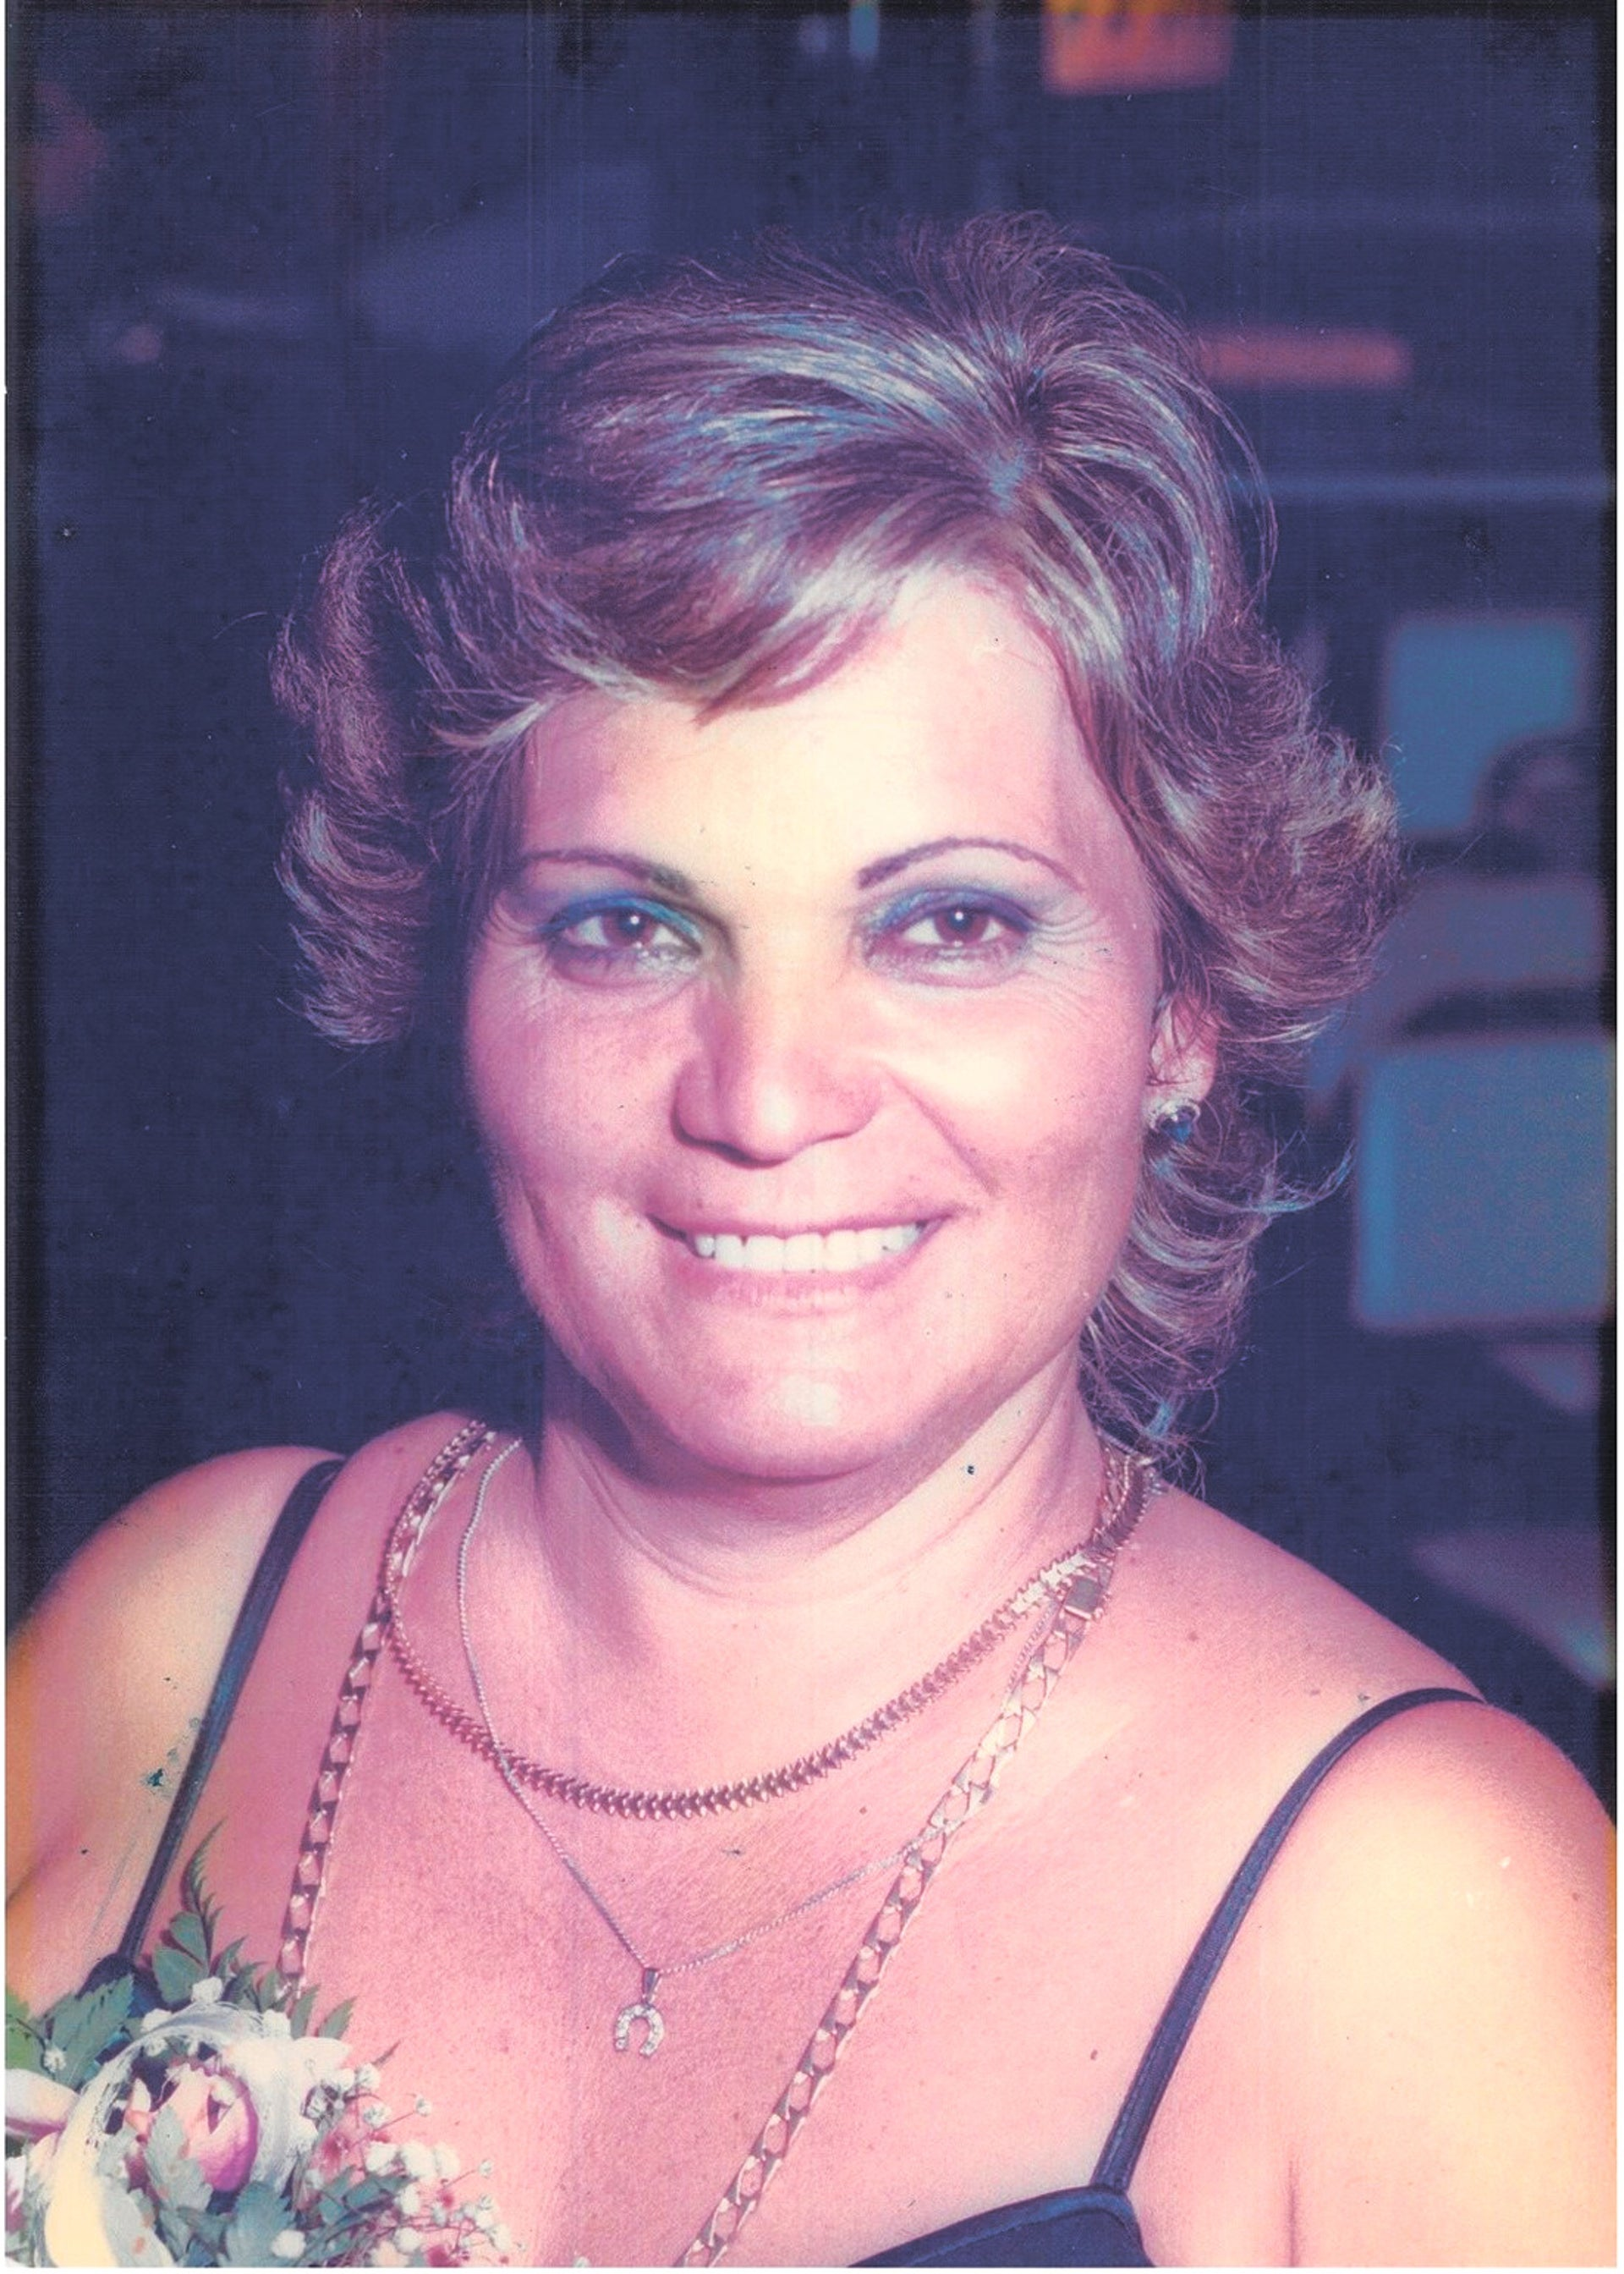 Eness Hasson. Grandmother was always there for the big family that she had brought into the world.